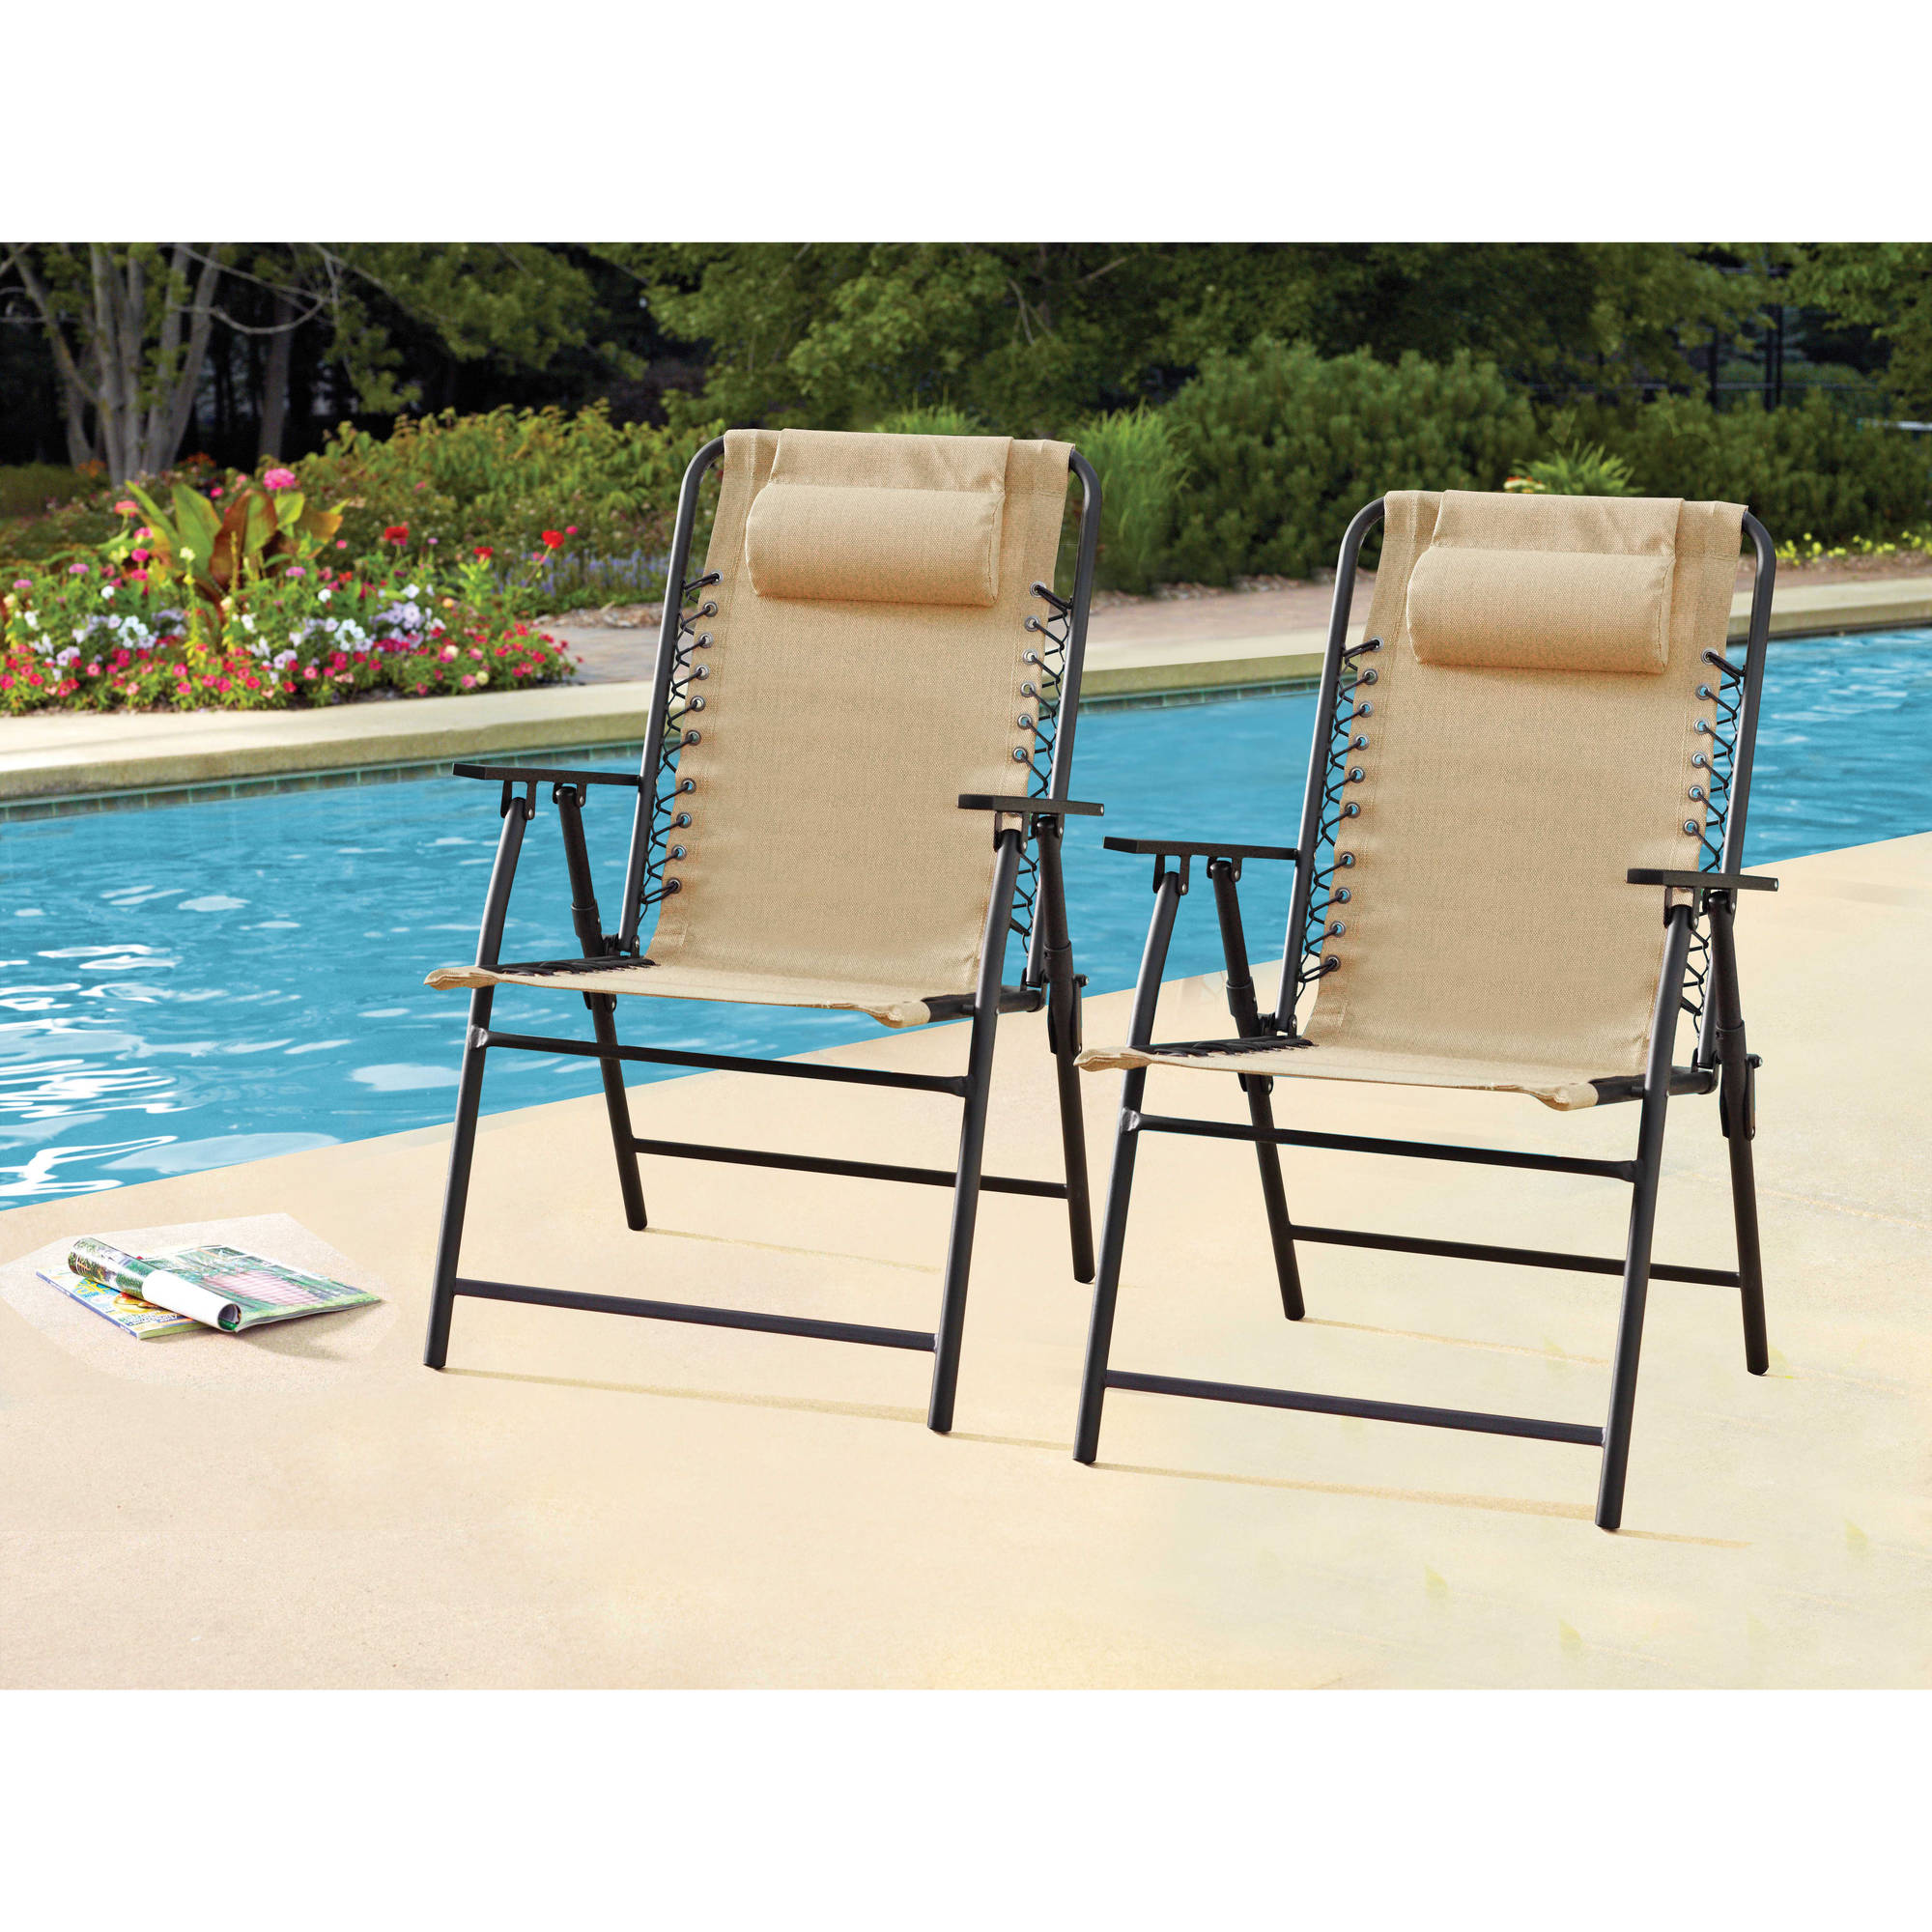 Perfect Mainstays Bungee Chairs,2pk,dune